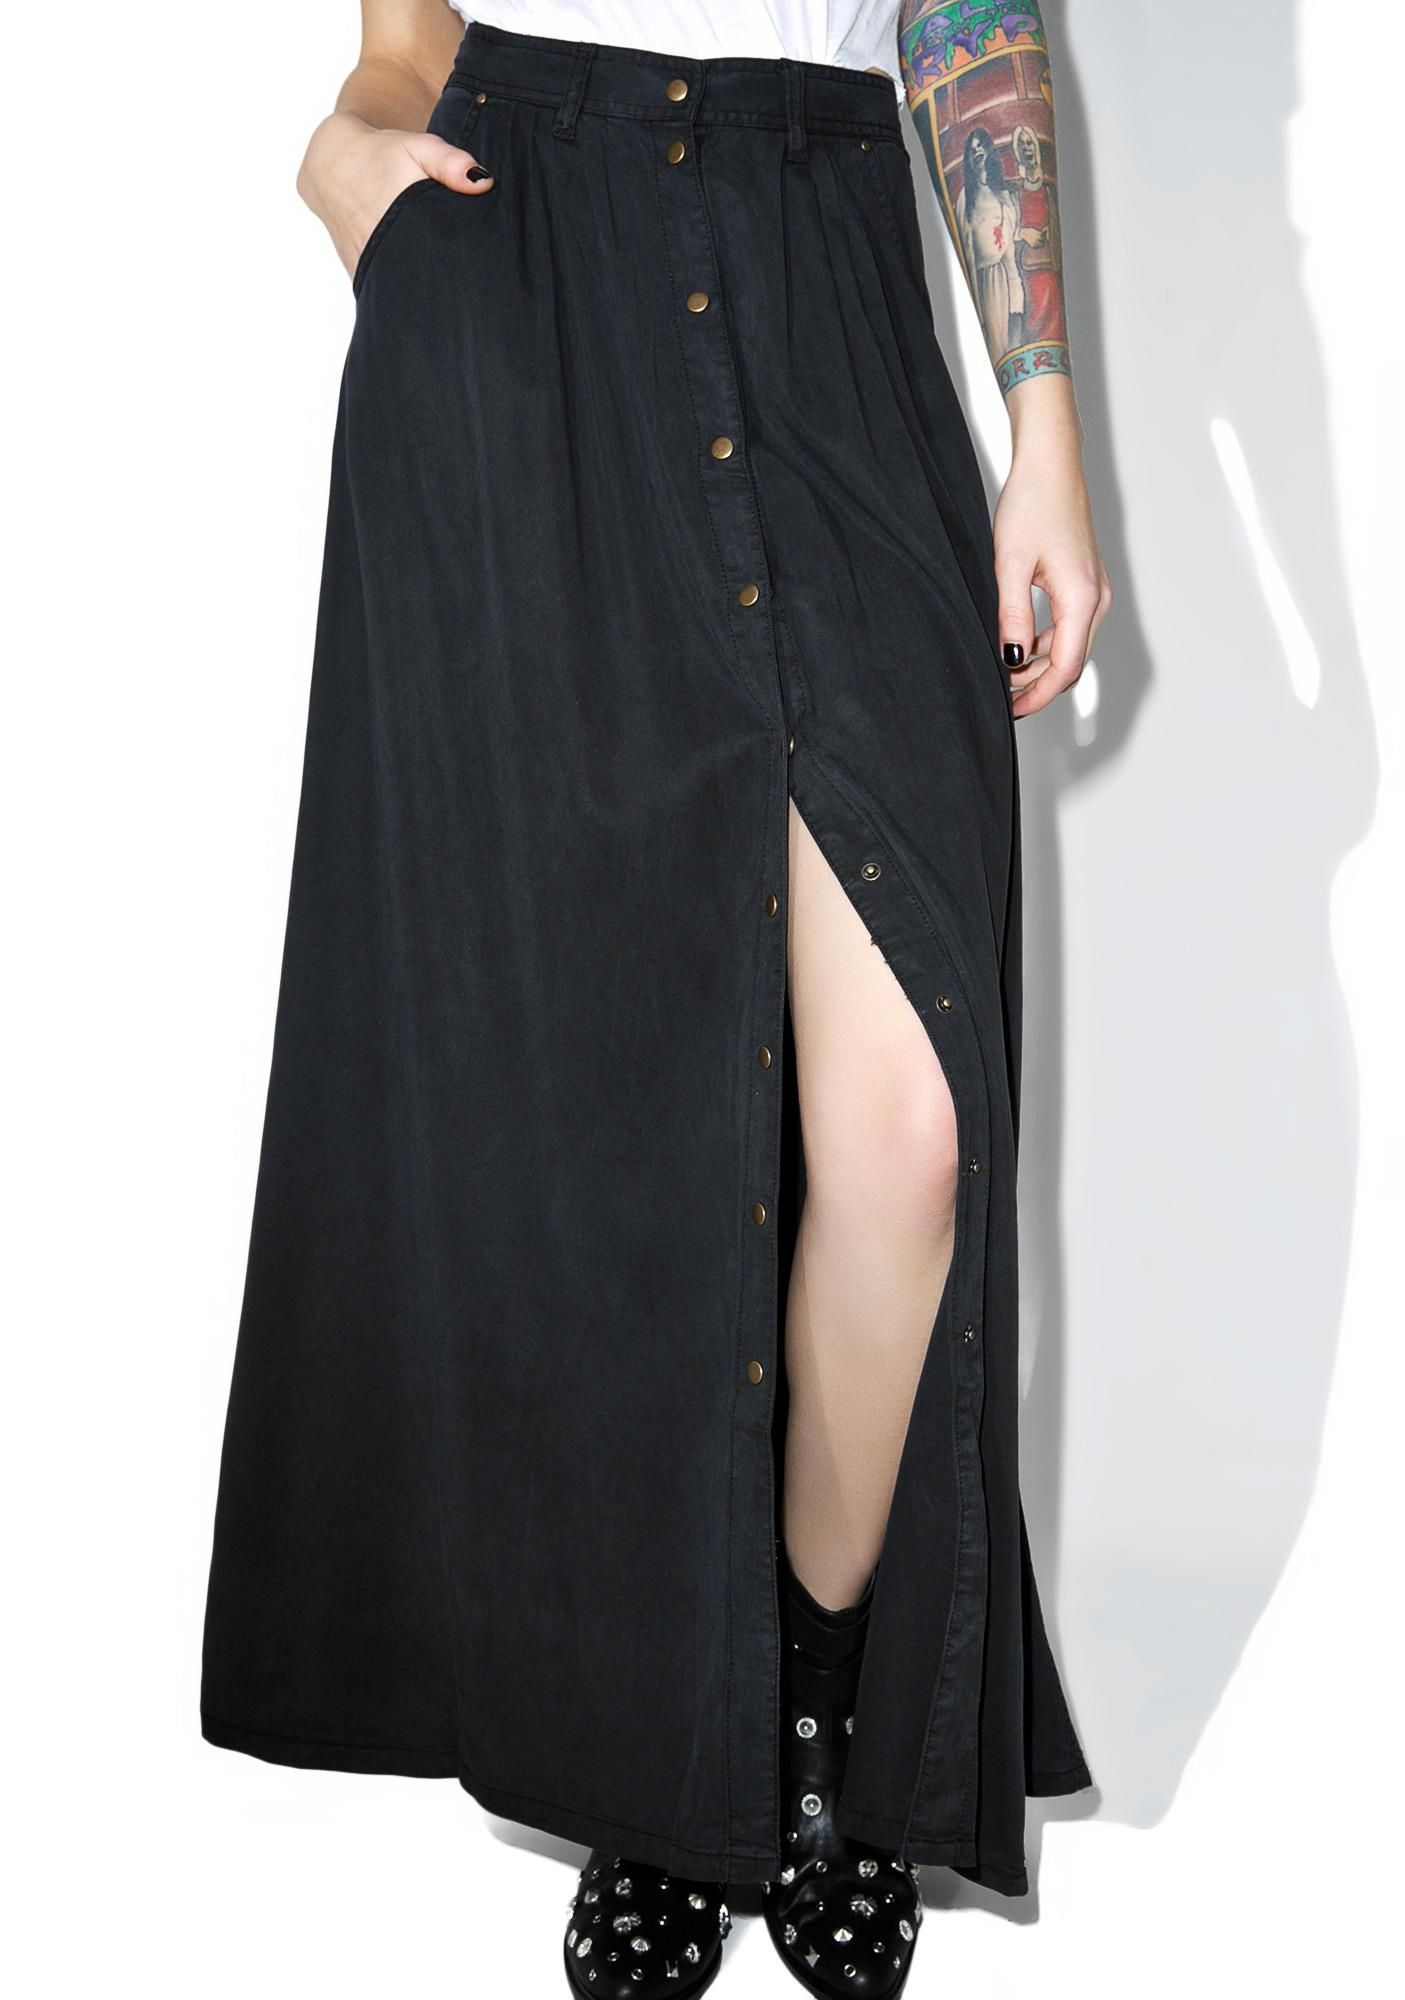 Sea Breezin' Button Up Maxi Skirt | Black maxi skirts, Black maxi ...